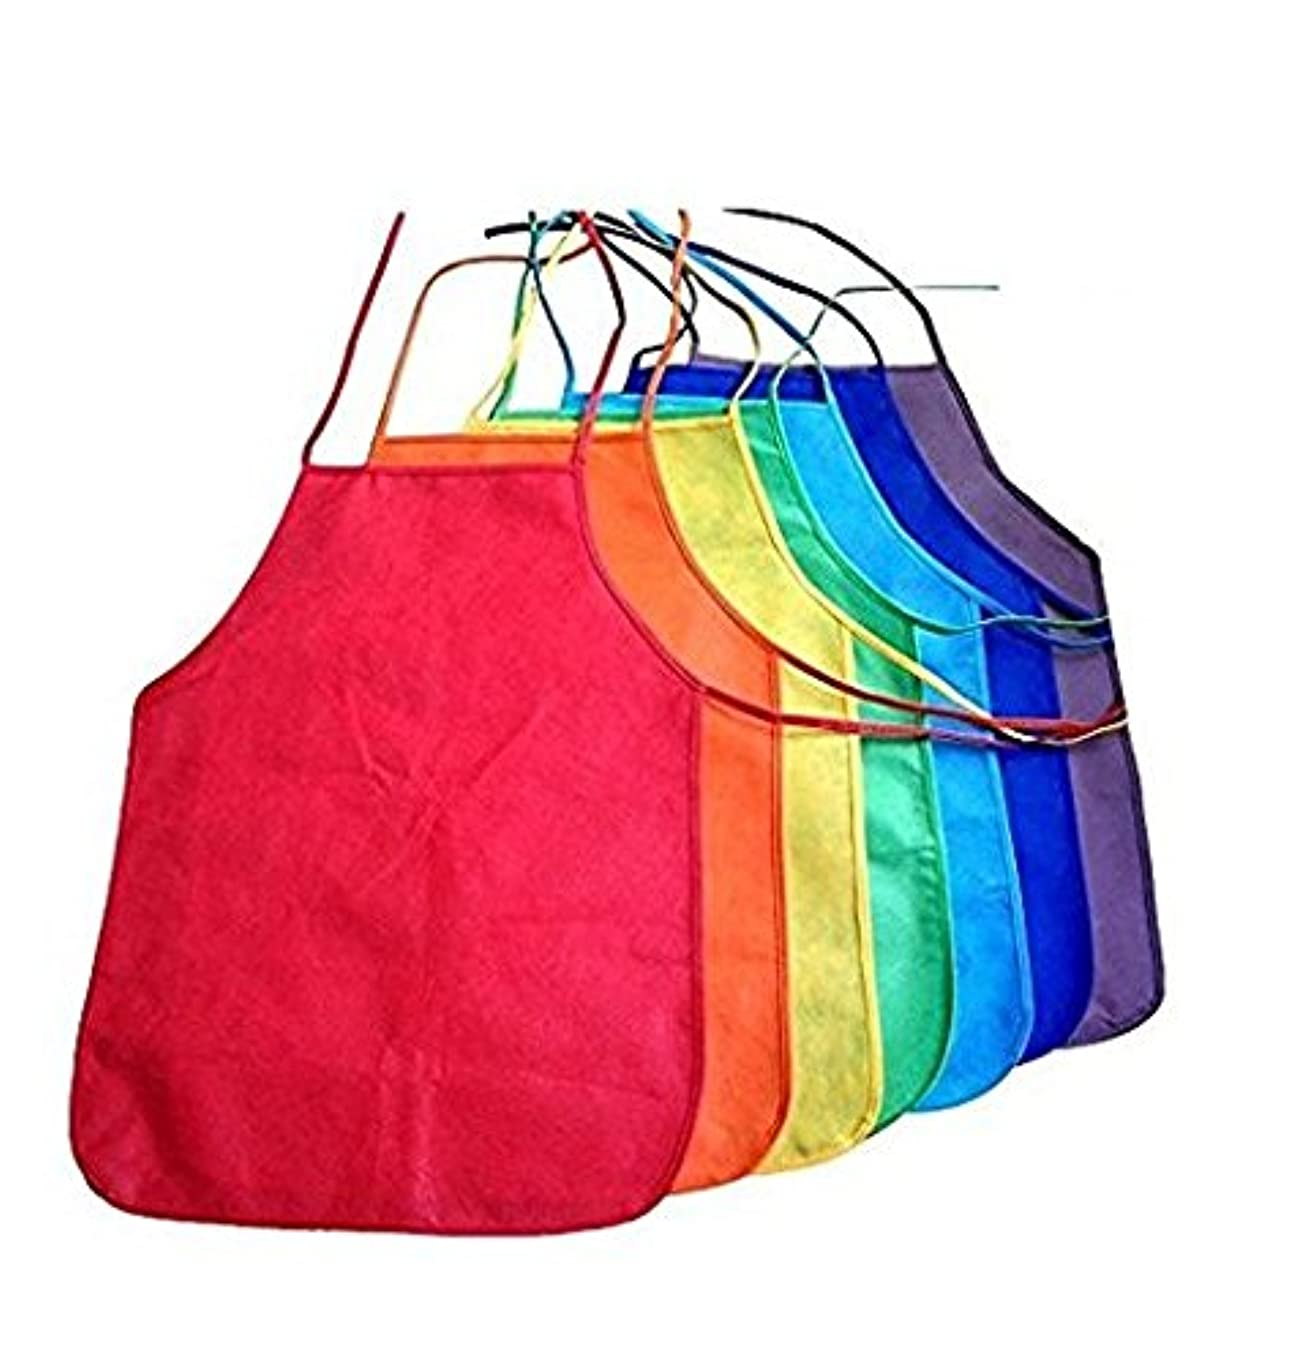 Multicolored Kids Artists Apron Set of 6 Open Back Sleeveless Art Craft Smock Aprons   Children's Assorted Variety Pack of 6 Colorful DIY Protective Reusable Kitchen   Painting Aprons Ages 3 and Up